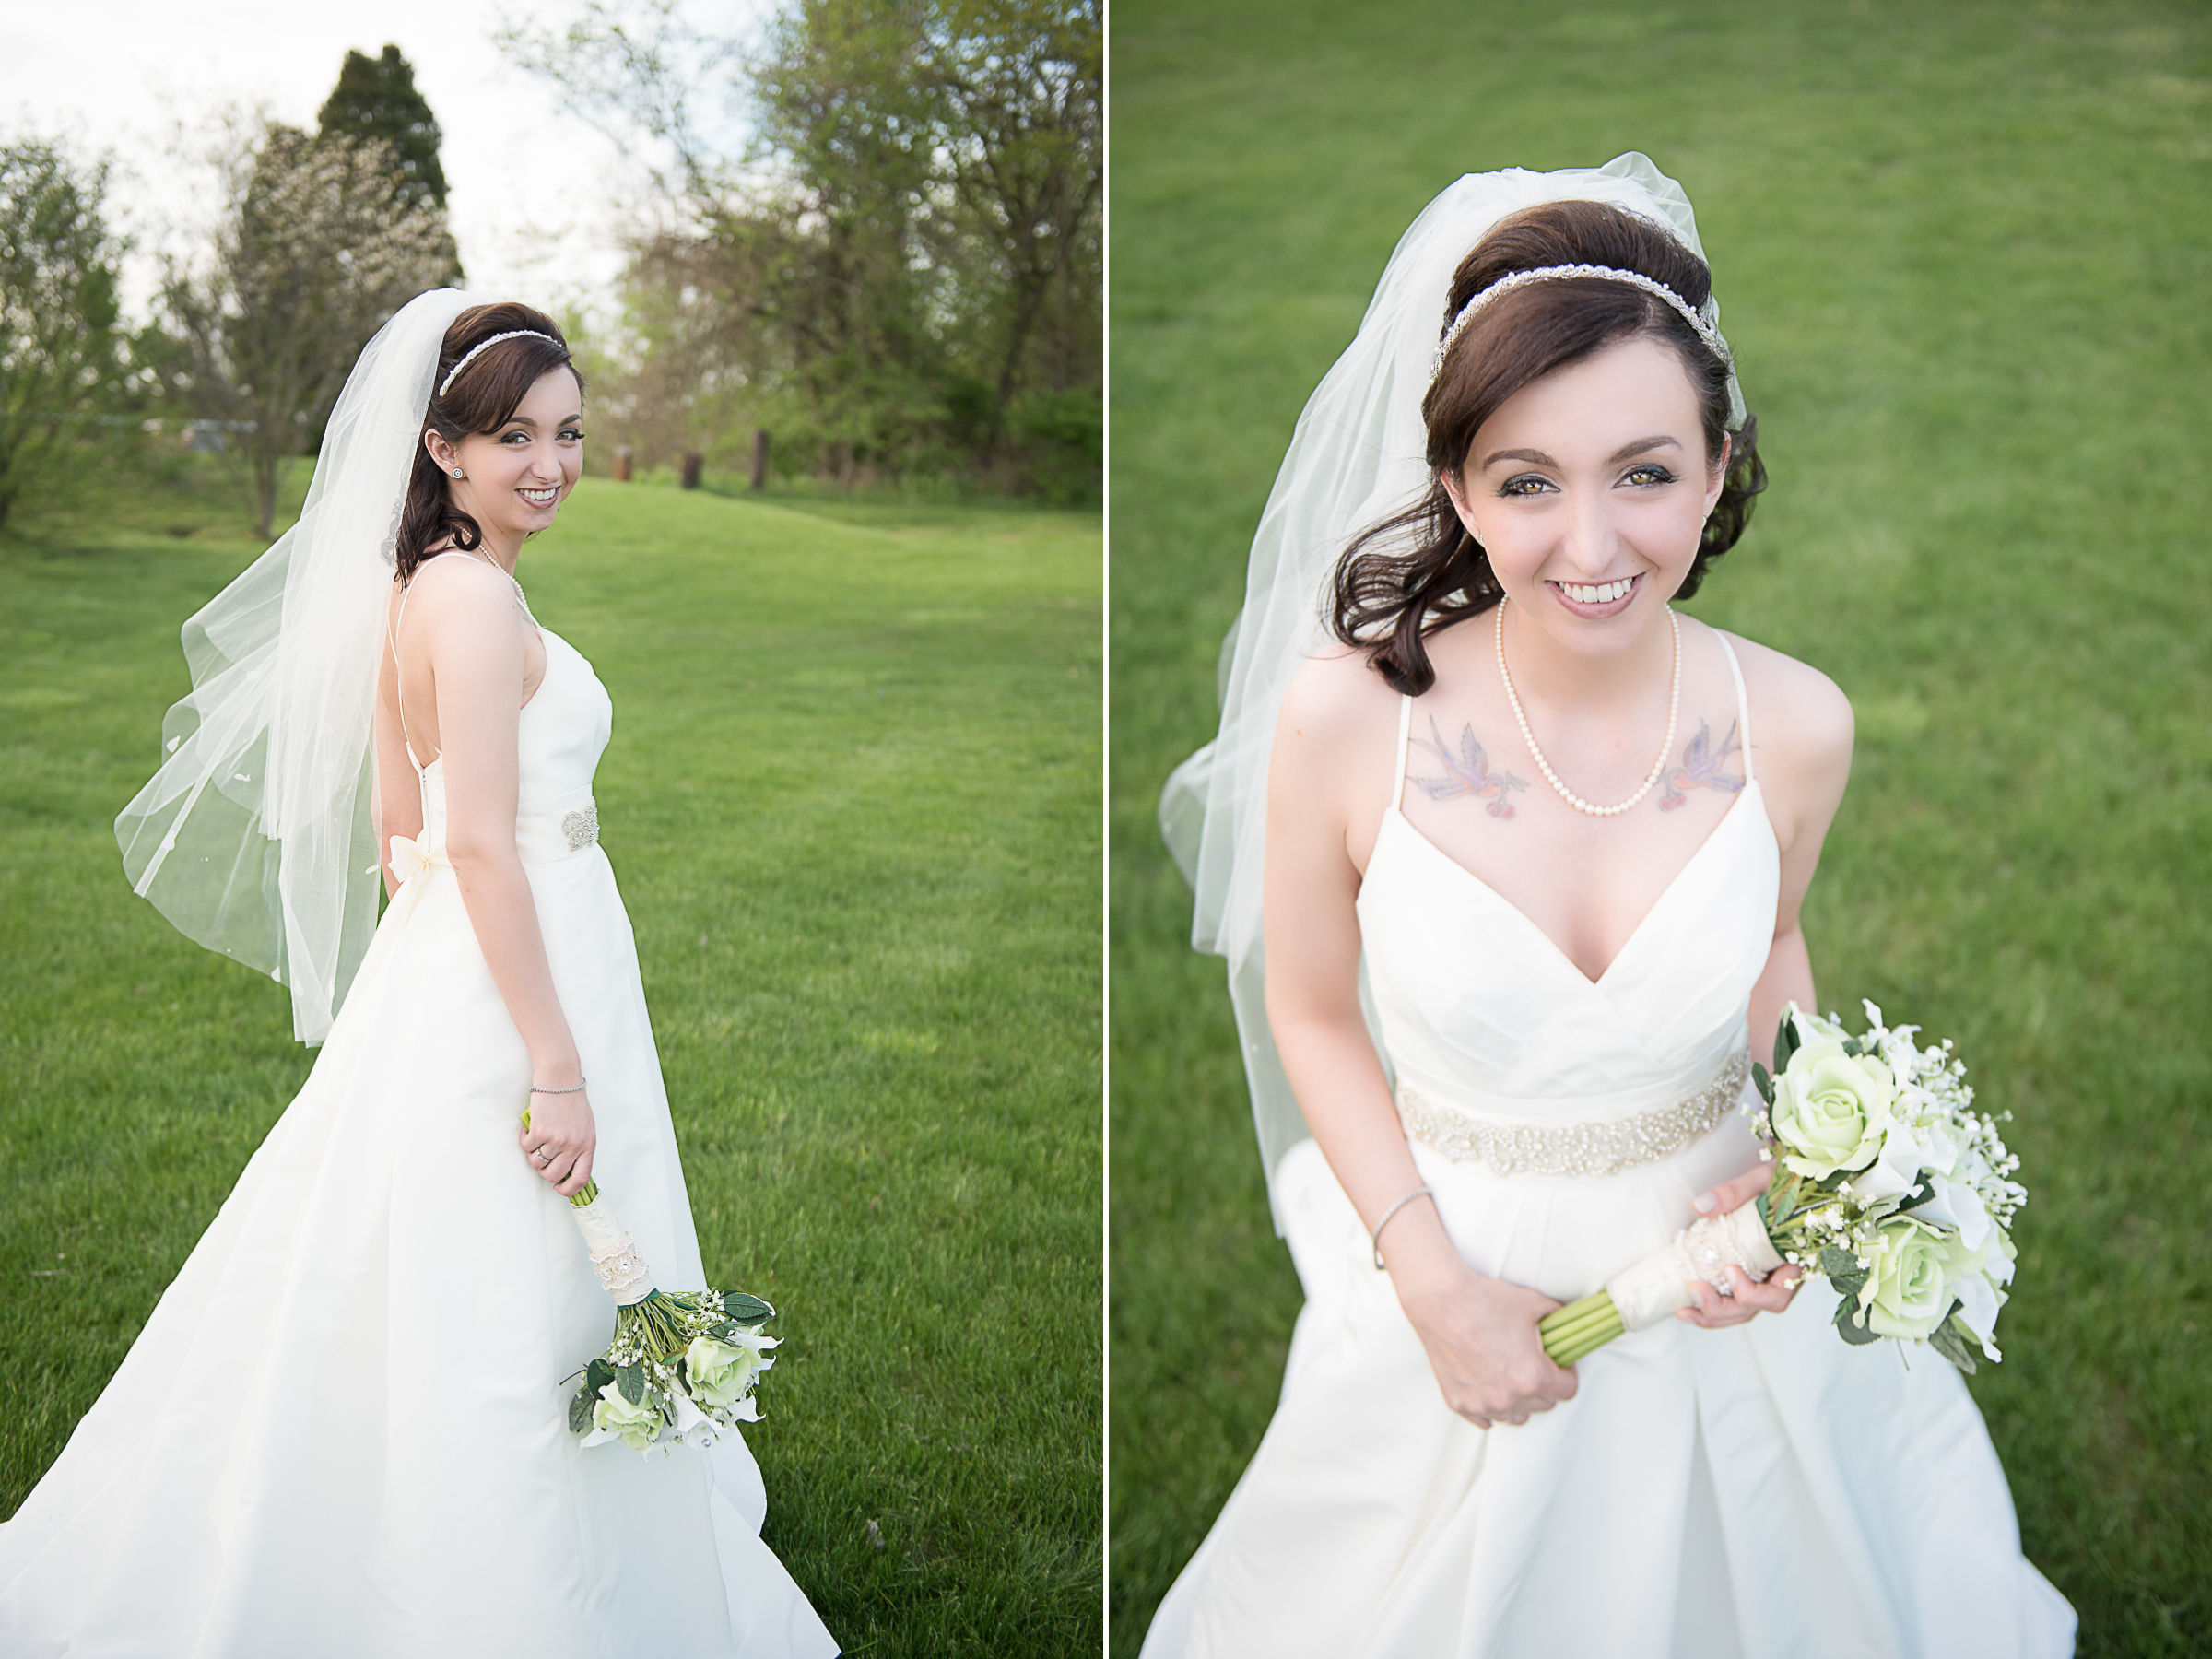 Beautiful Brides 2013 #1